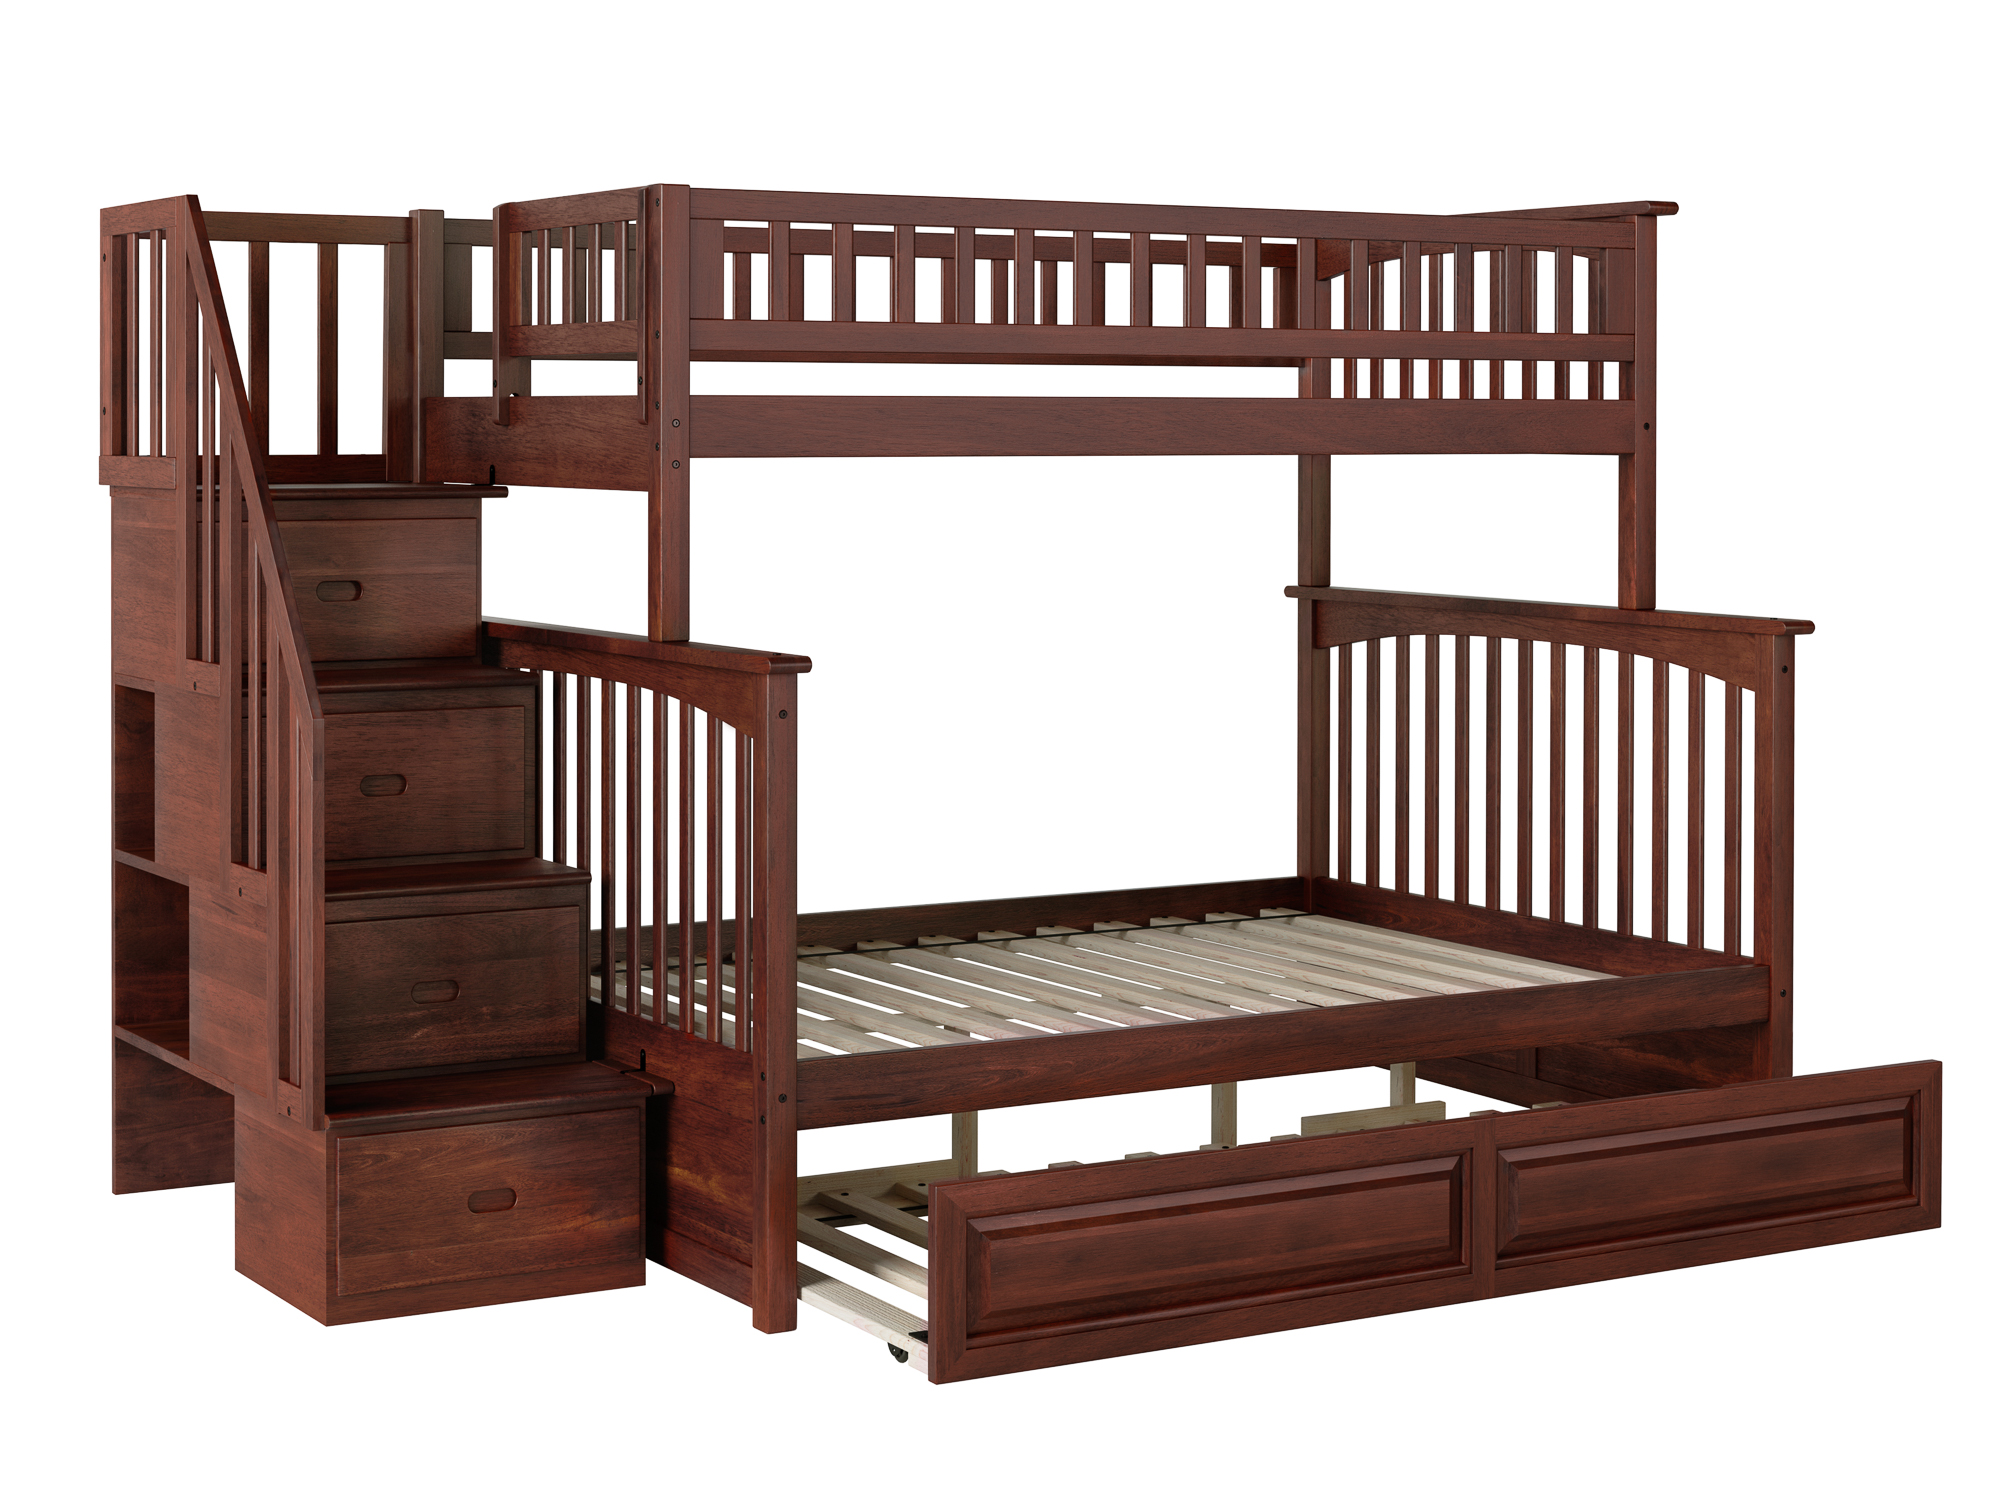 Picture of: Columbia Staircase Bunk Bed Twin Over Full With Twin Size Raised Panel Trundle Bed In Walnut Walmart Com Walmart Com